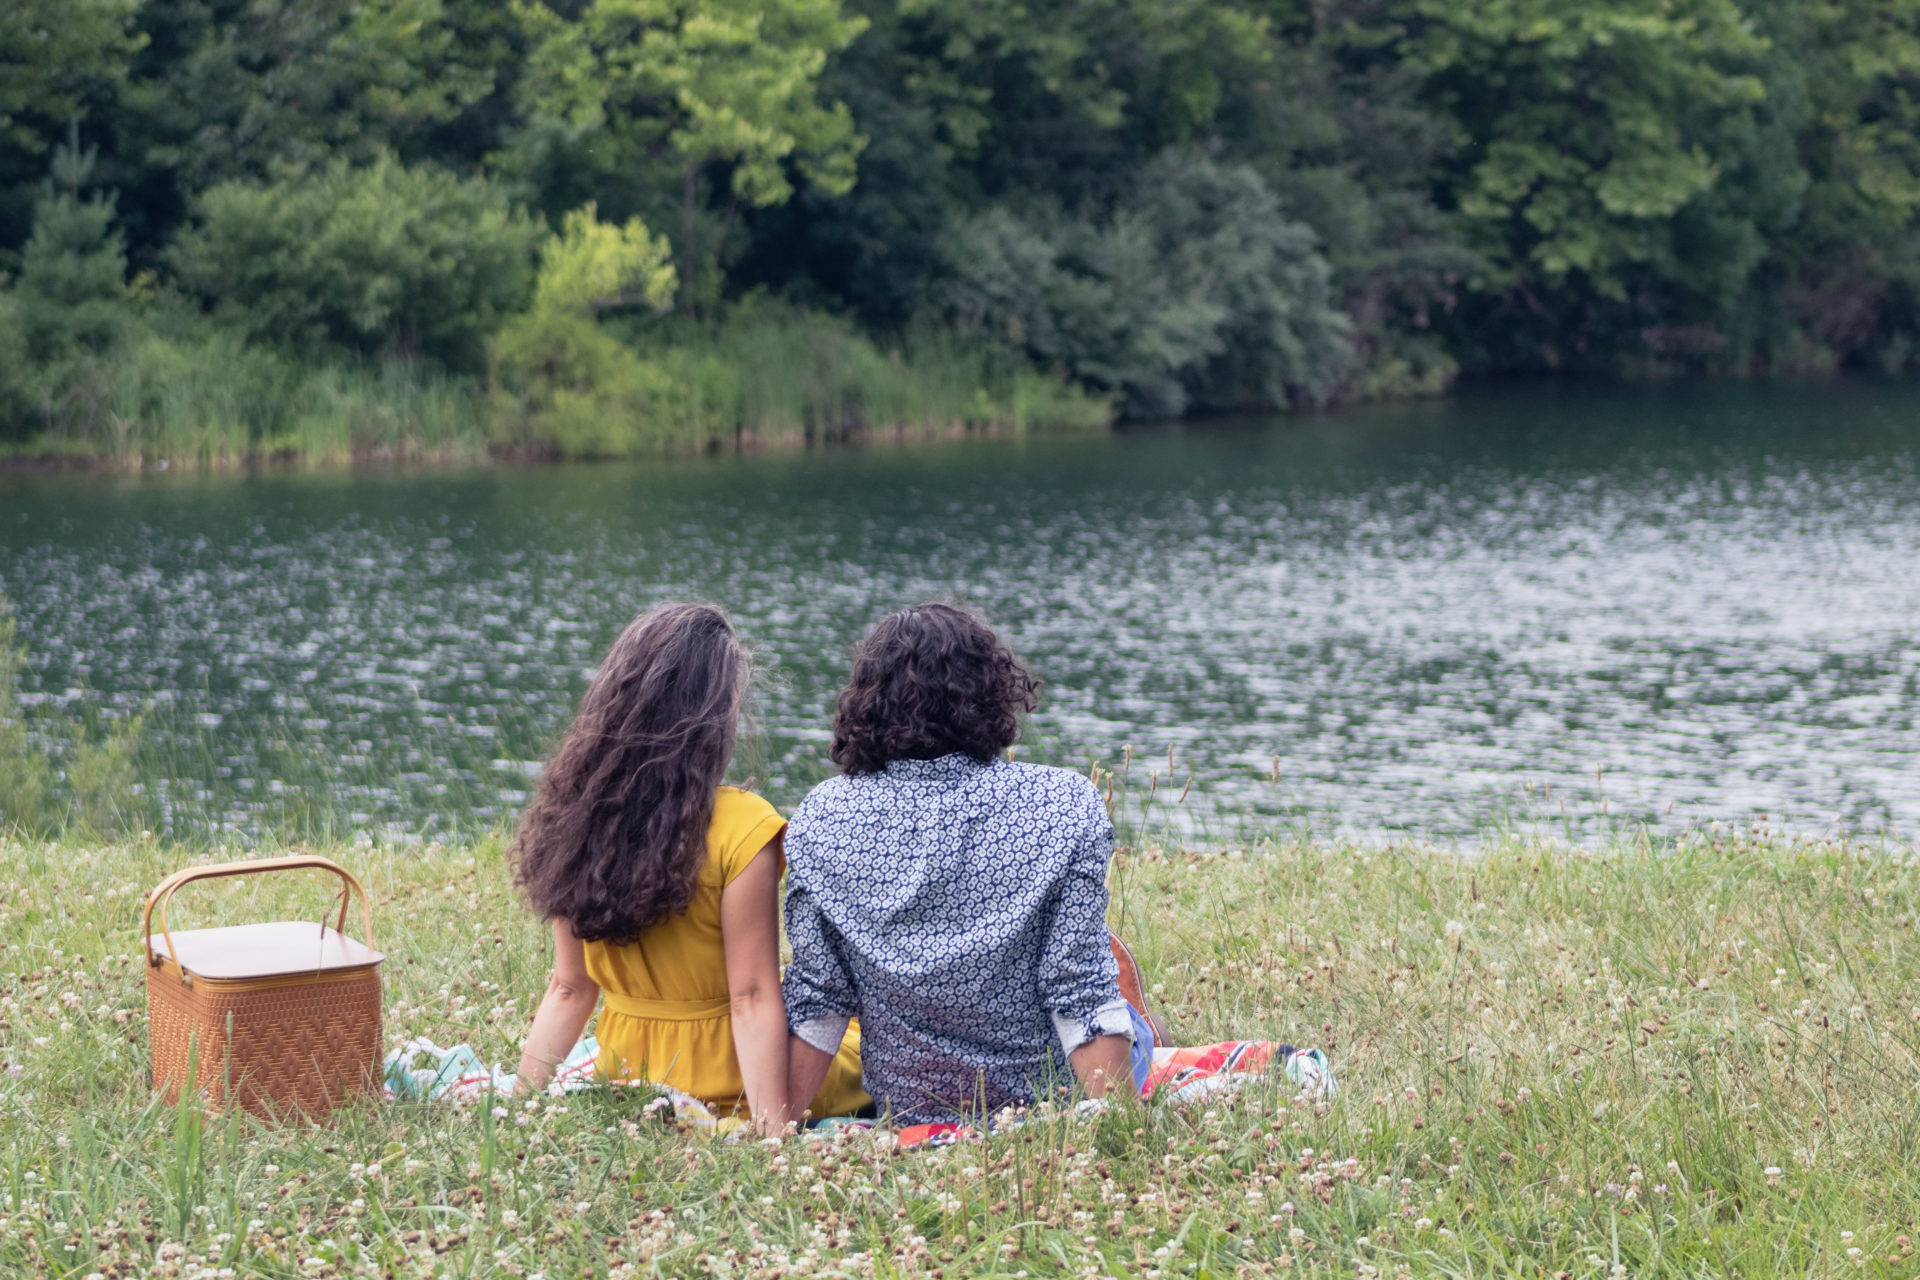 Couple enjoying a picnic by the pond. Photo by Conservancy Staff